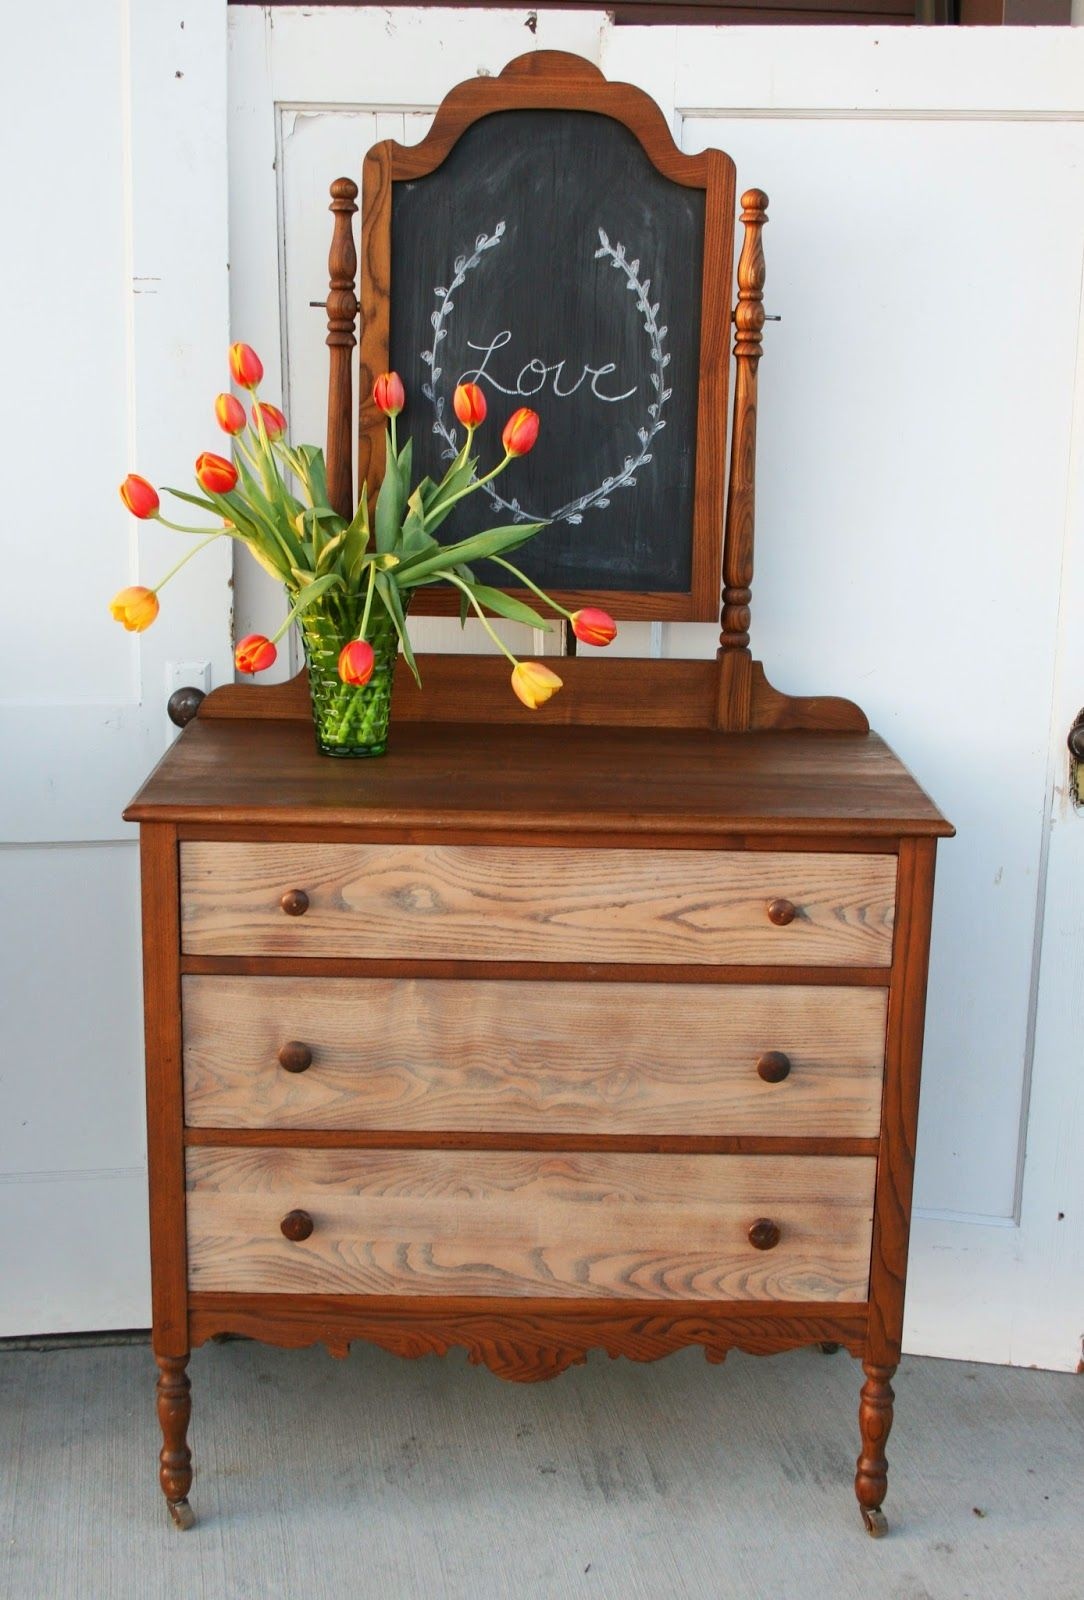 Genial Antique Recreation: Two Toned Stained Dresser With Mirror/Chalkboard